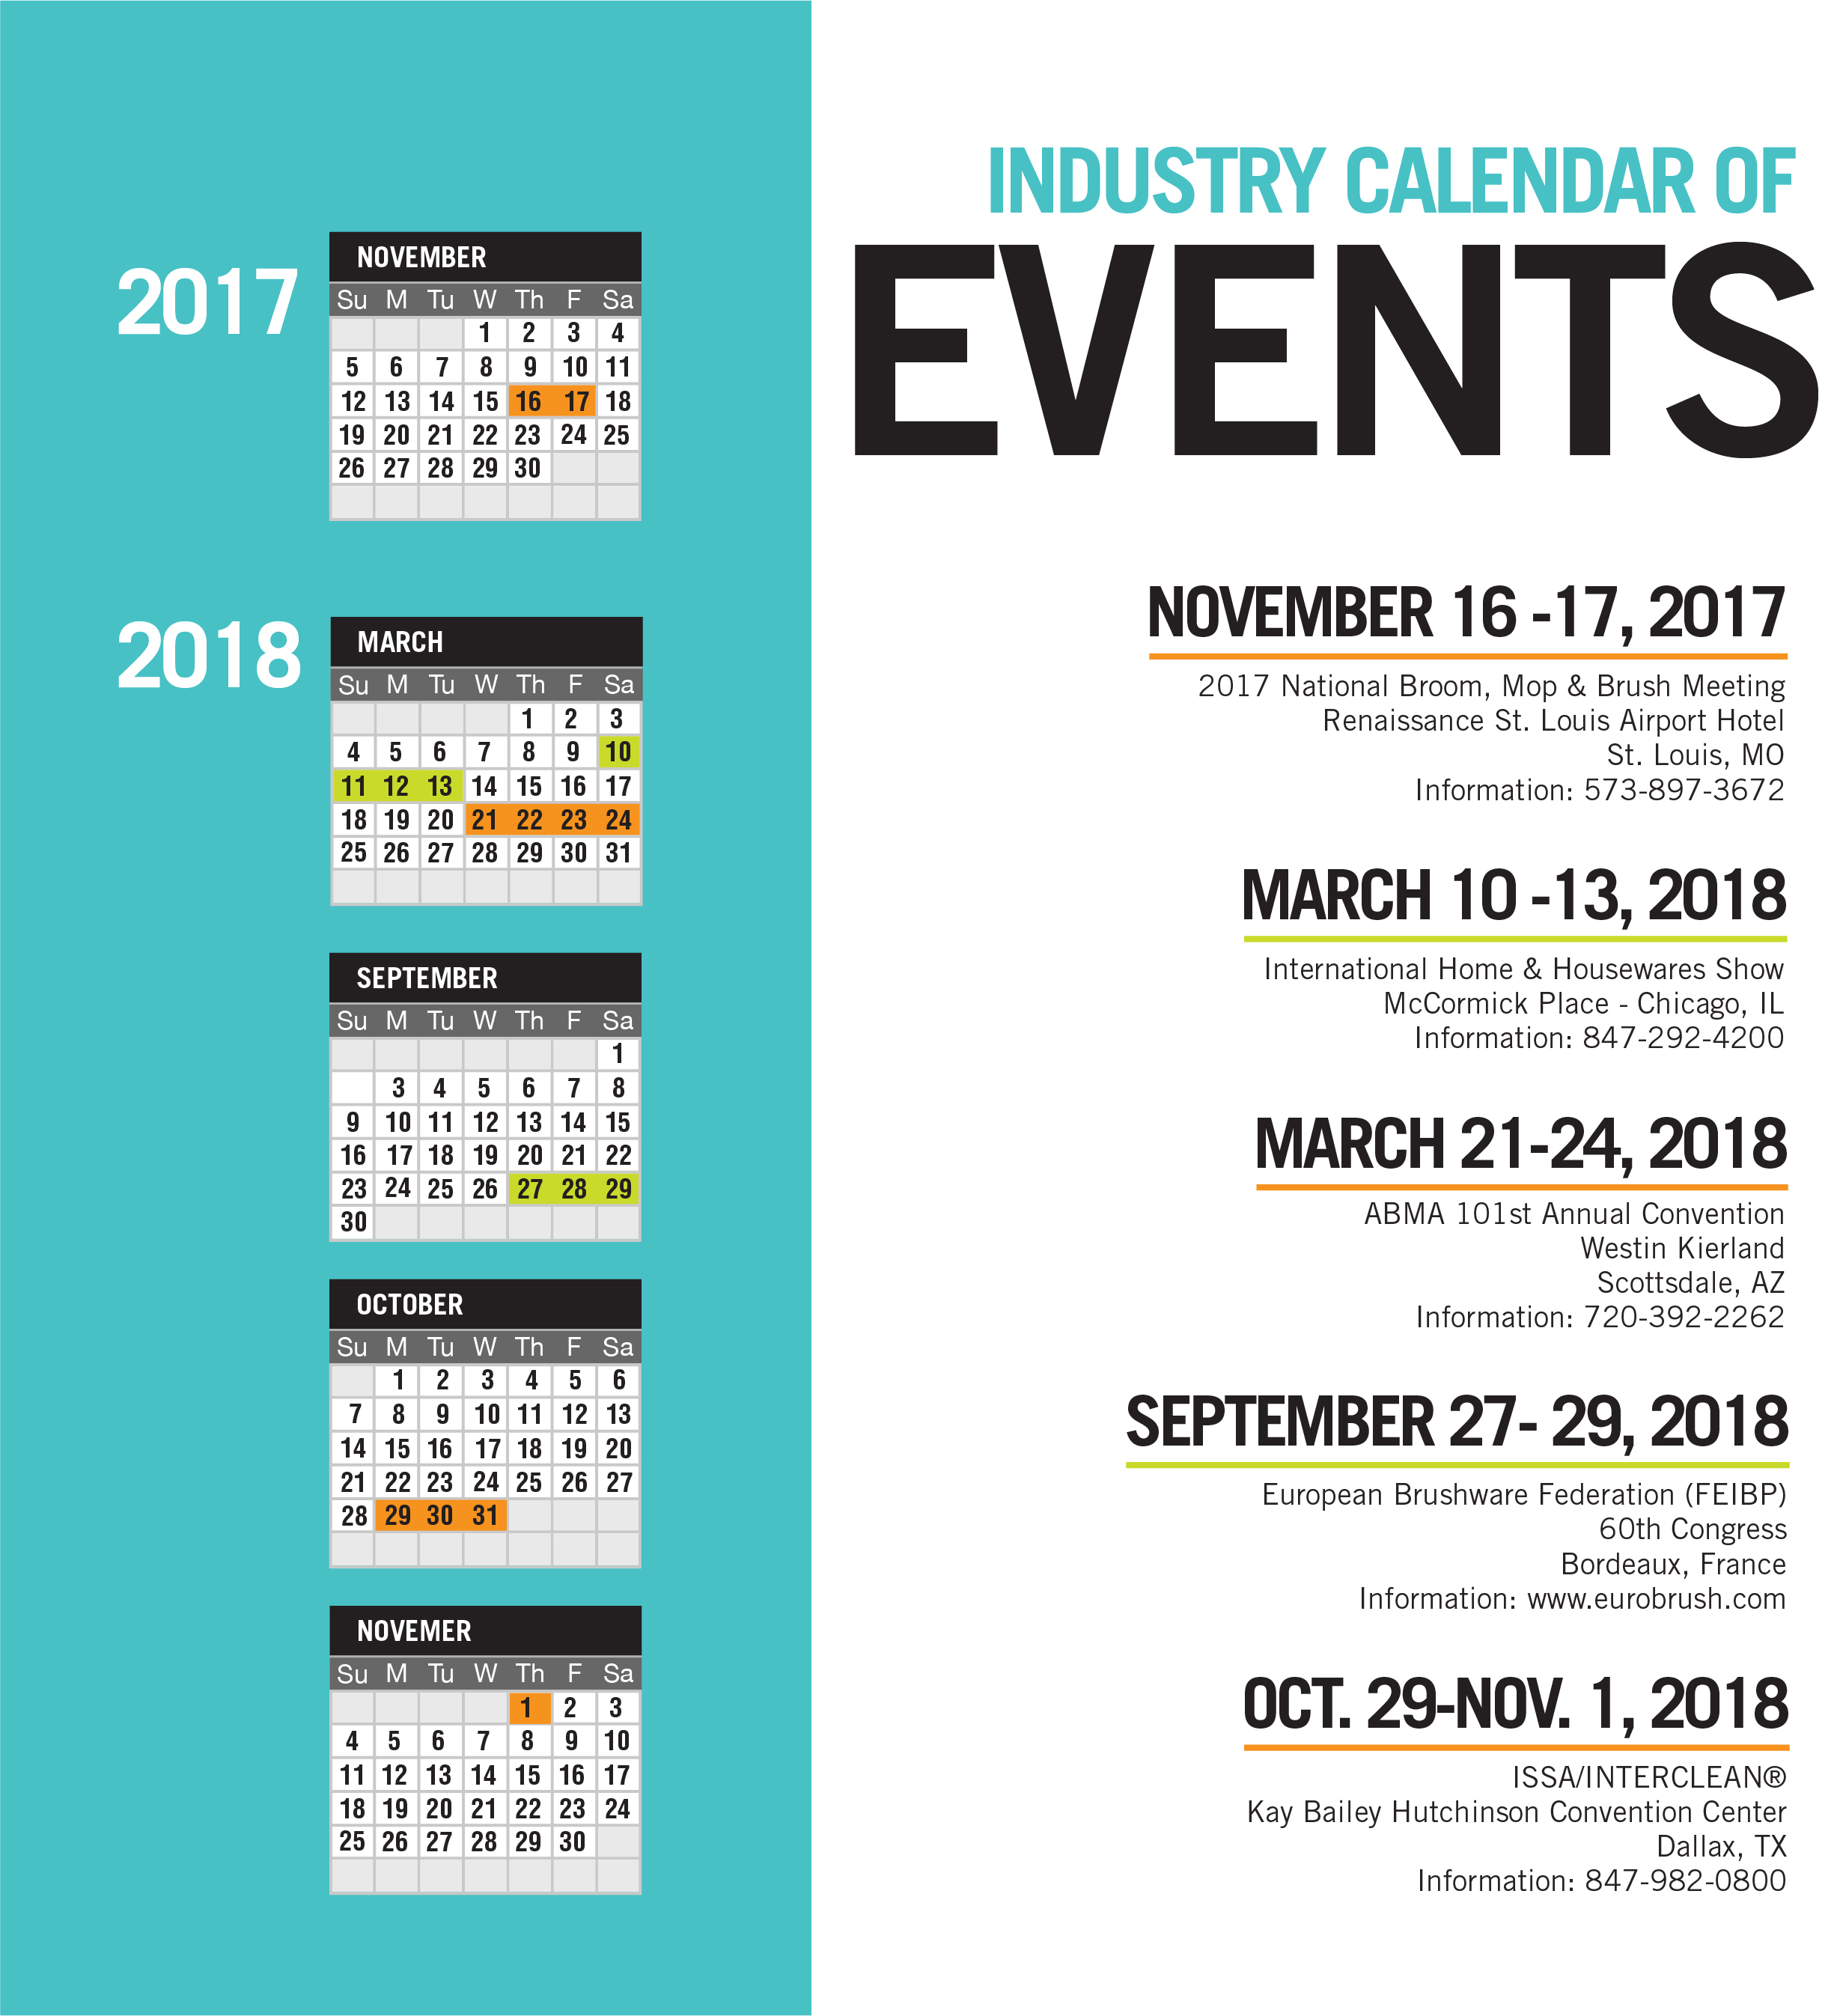 Industry Calendar of Events